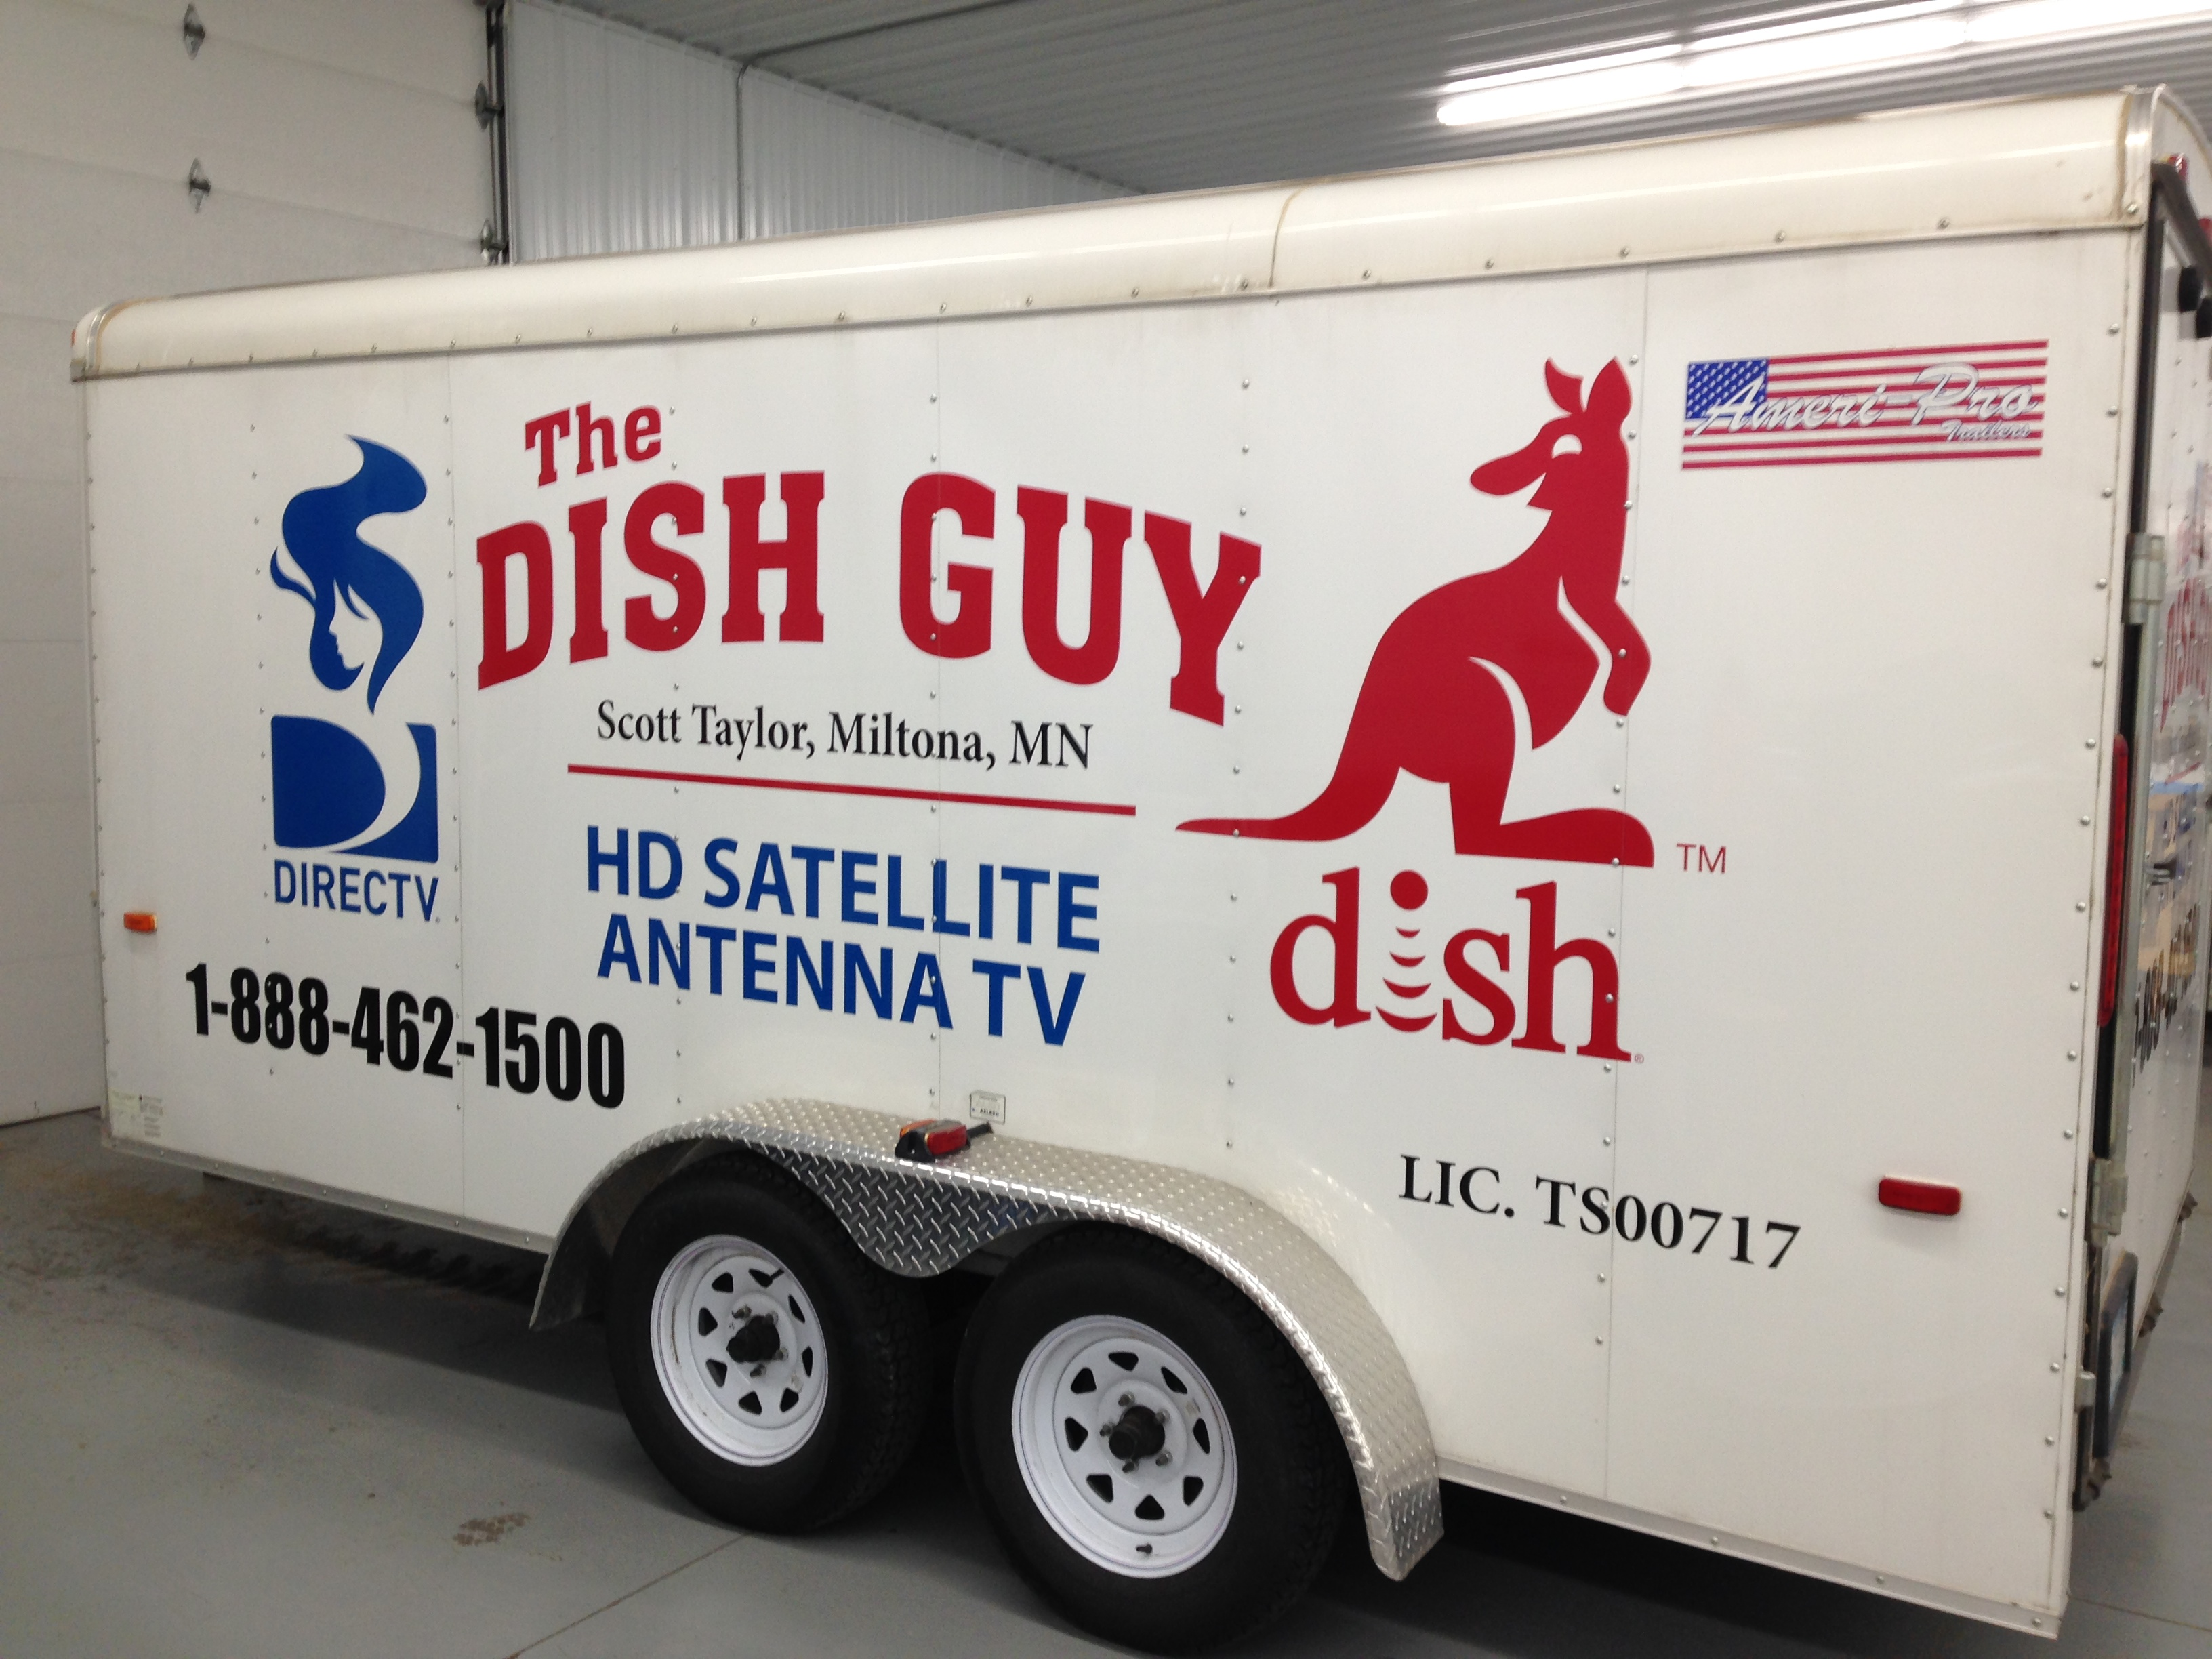 Custom Business Trailer Lettering from Signmax